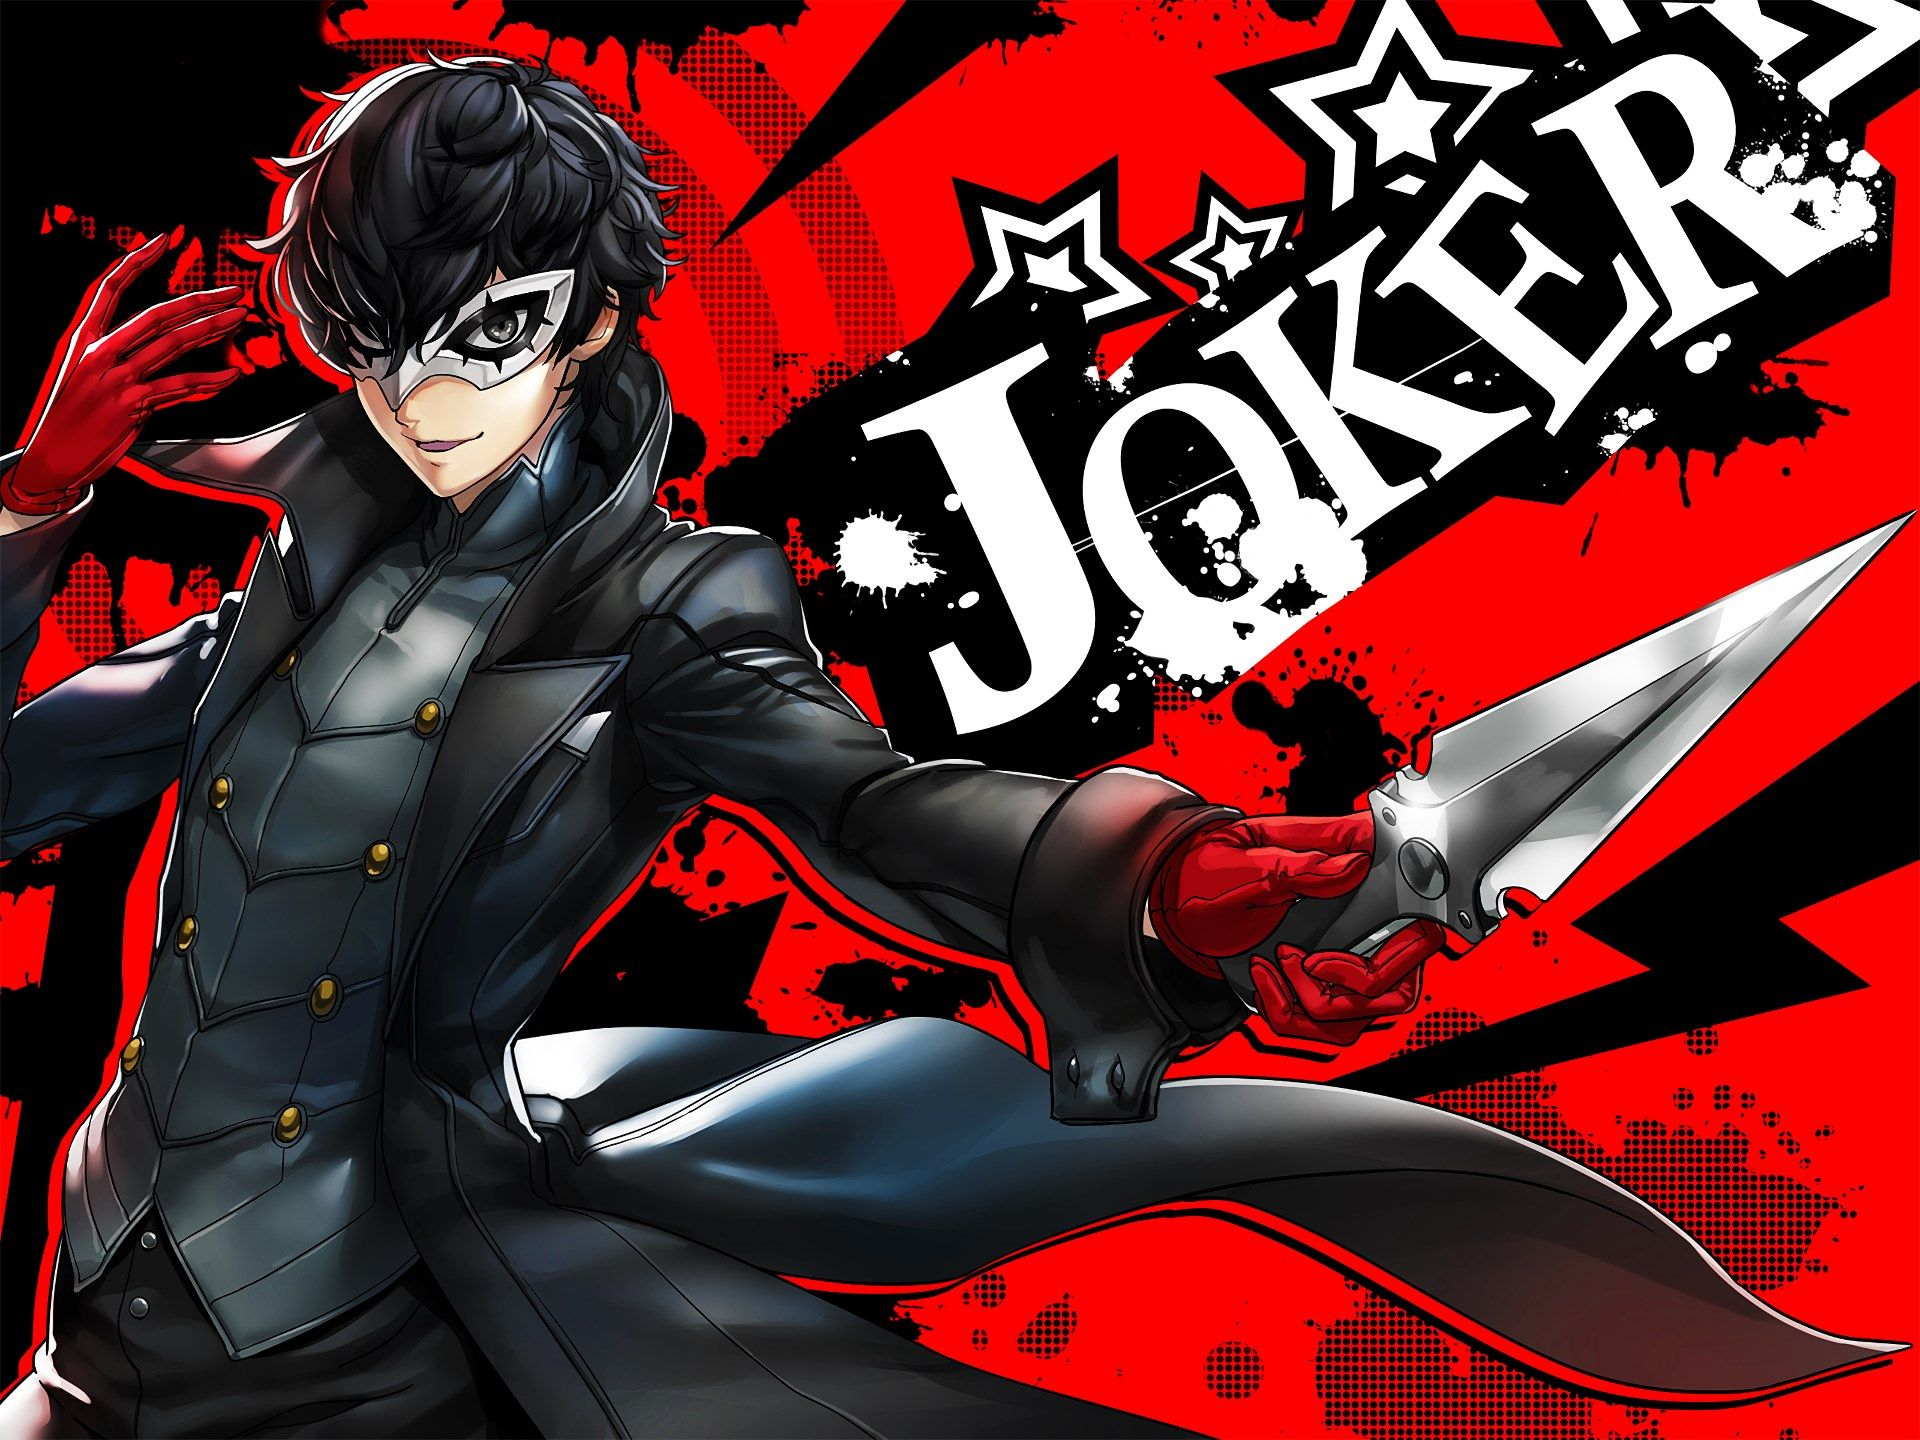 Persona 5 Wallpaper 1440p Posted By Christopher Anderson